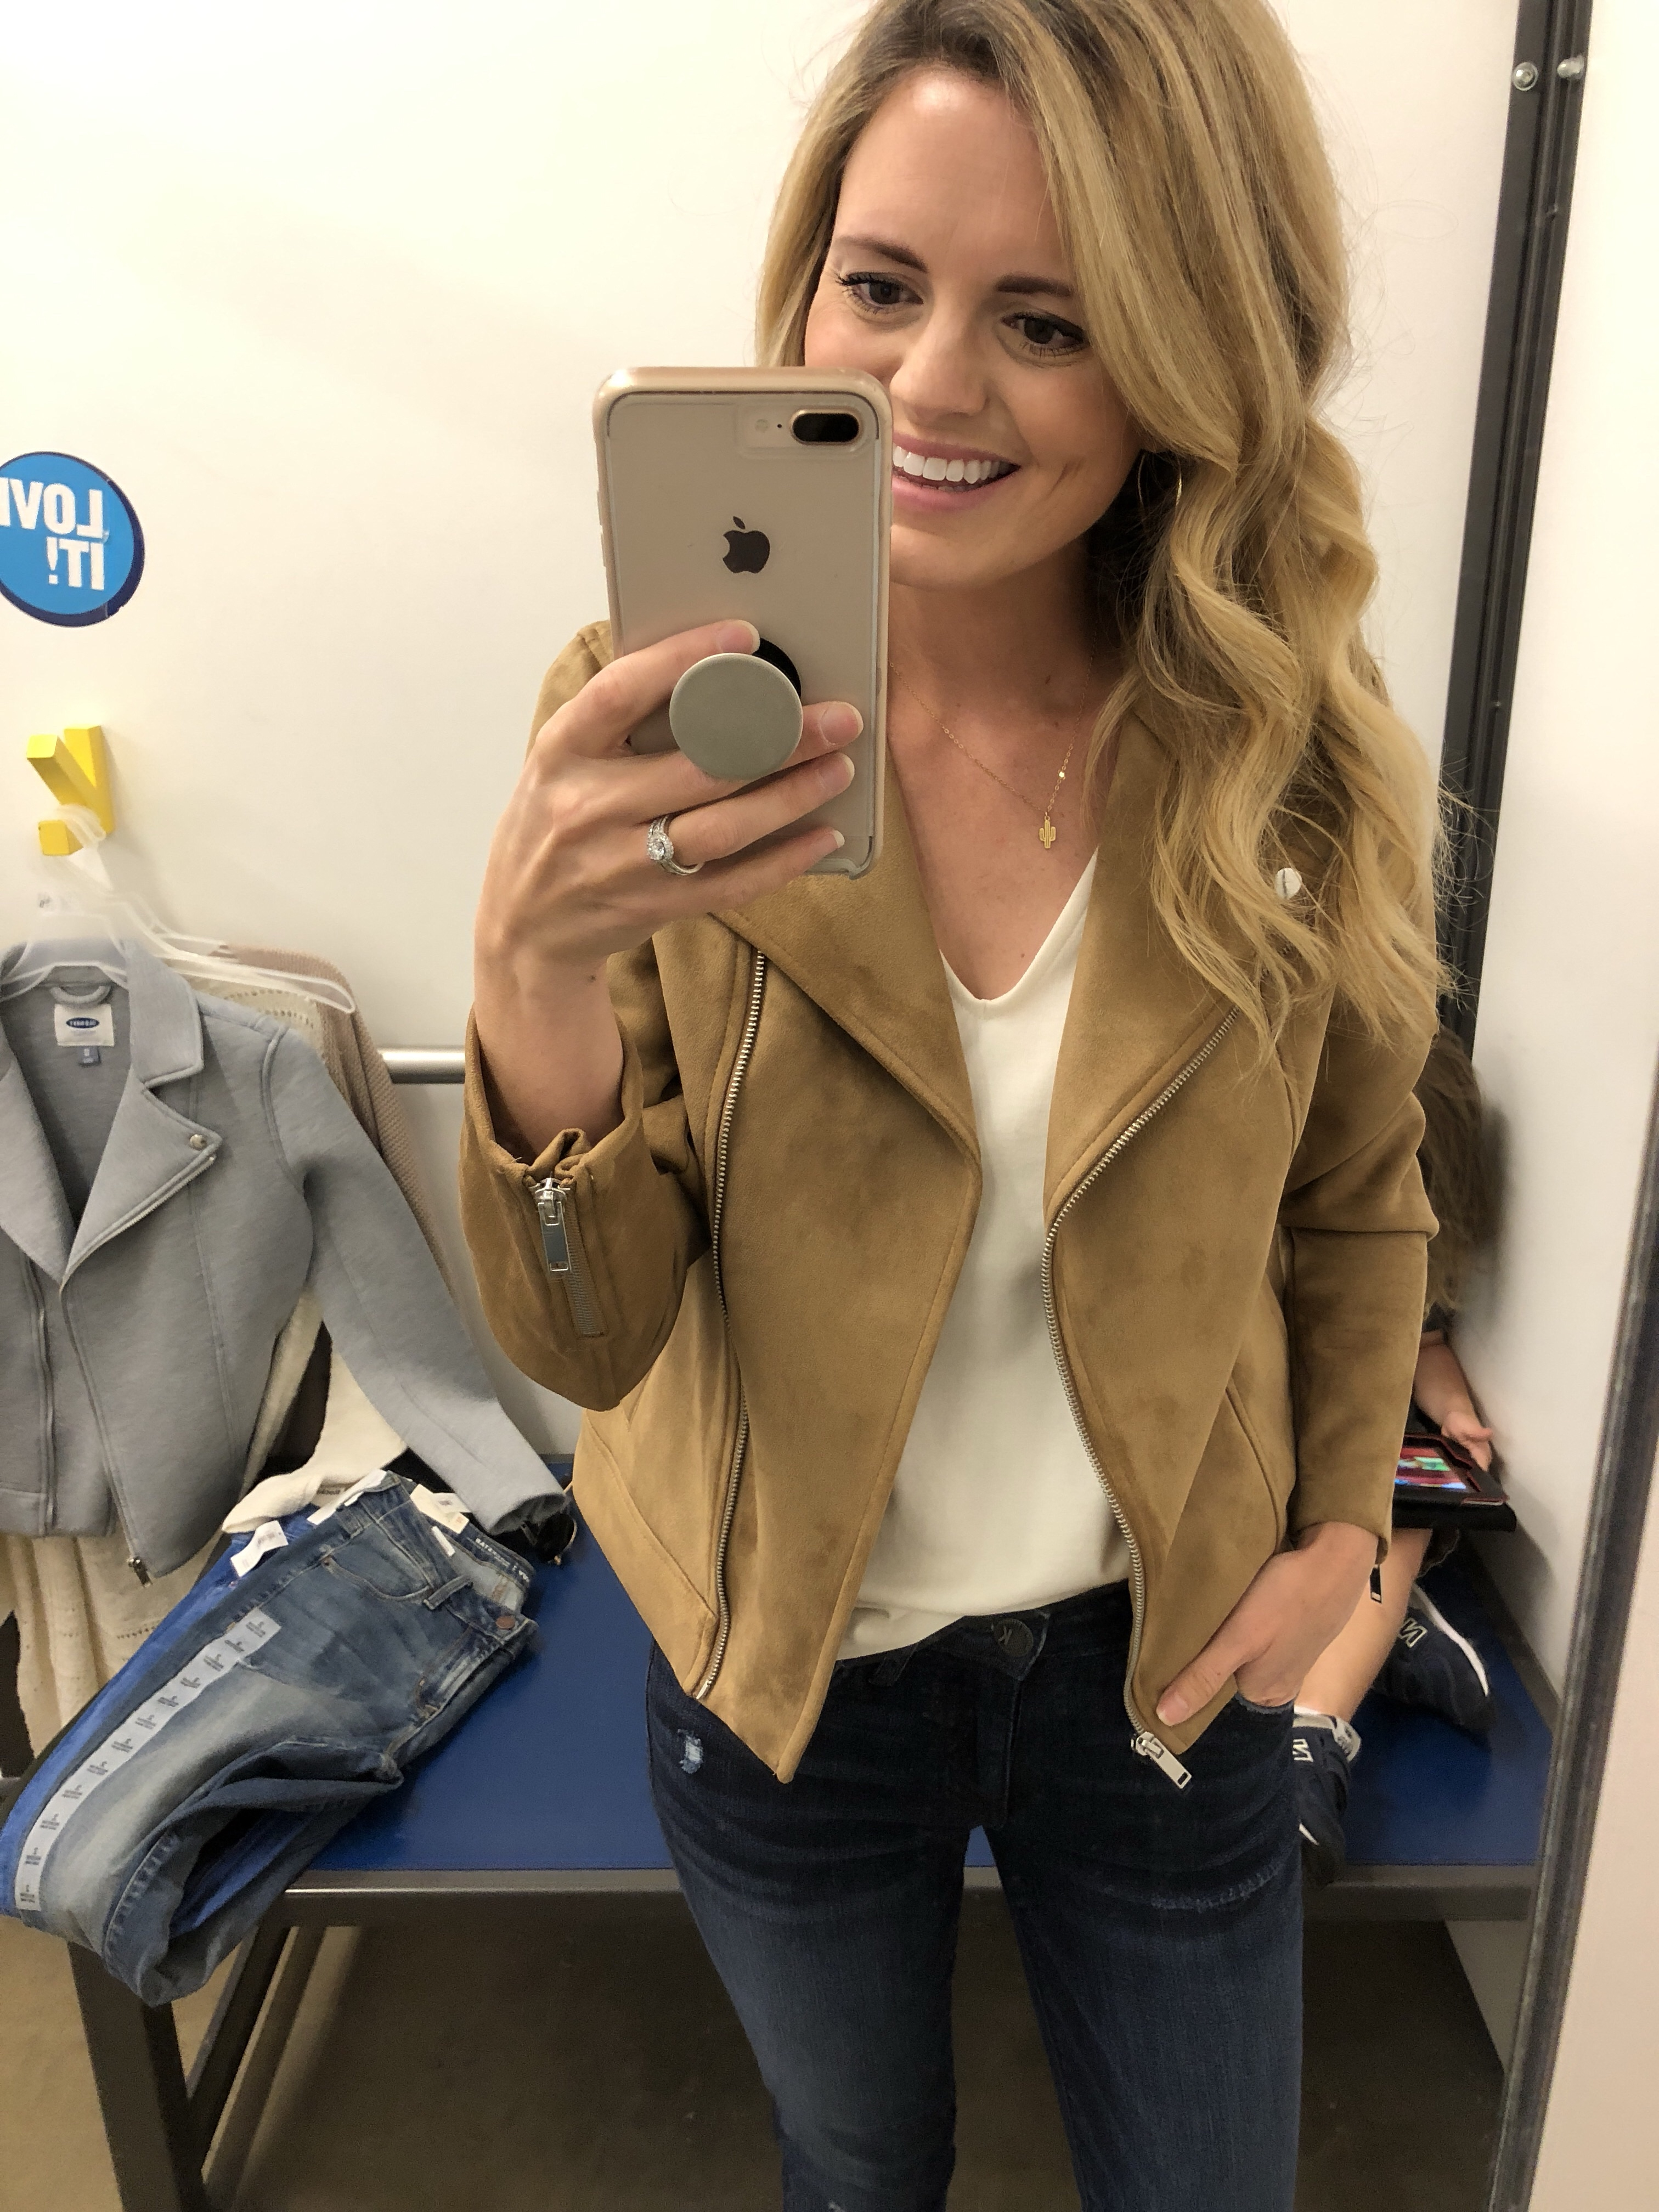 dfdb874946 I missed out on a similar jacket like this at the Nordstrom Anniversary sale